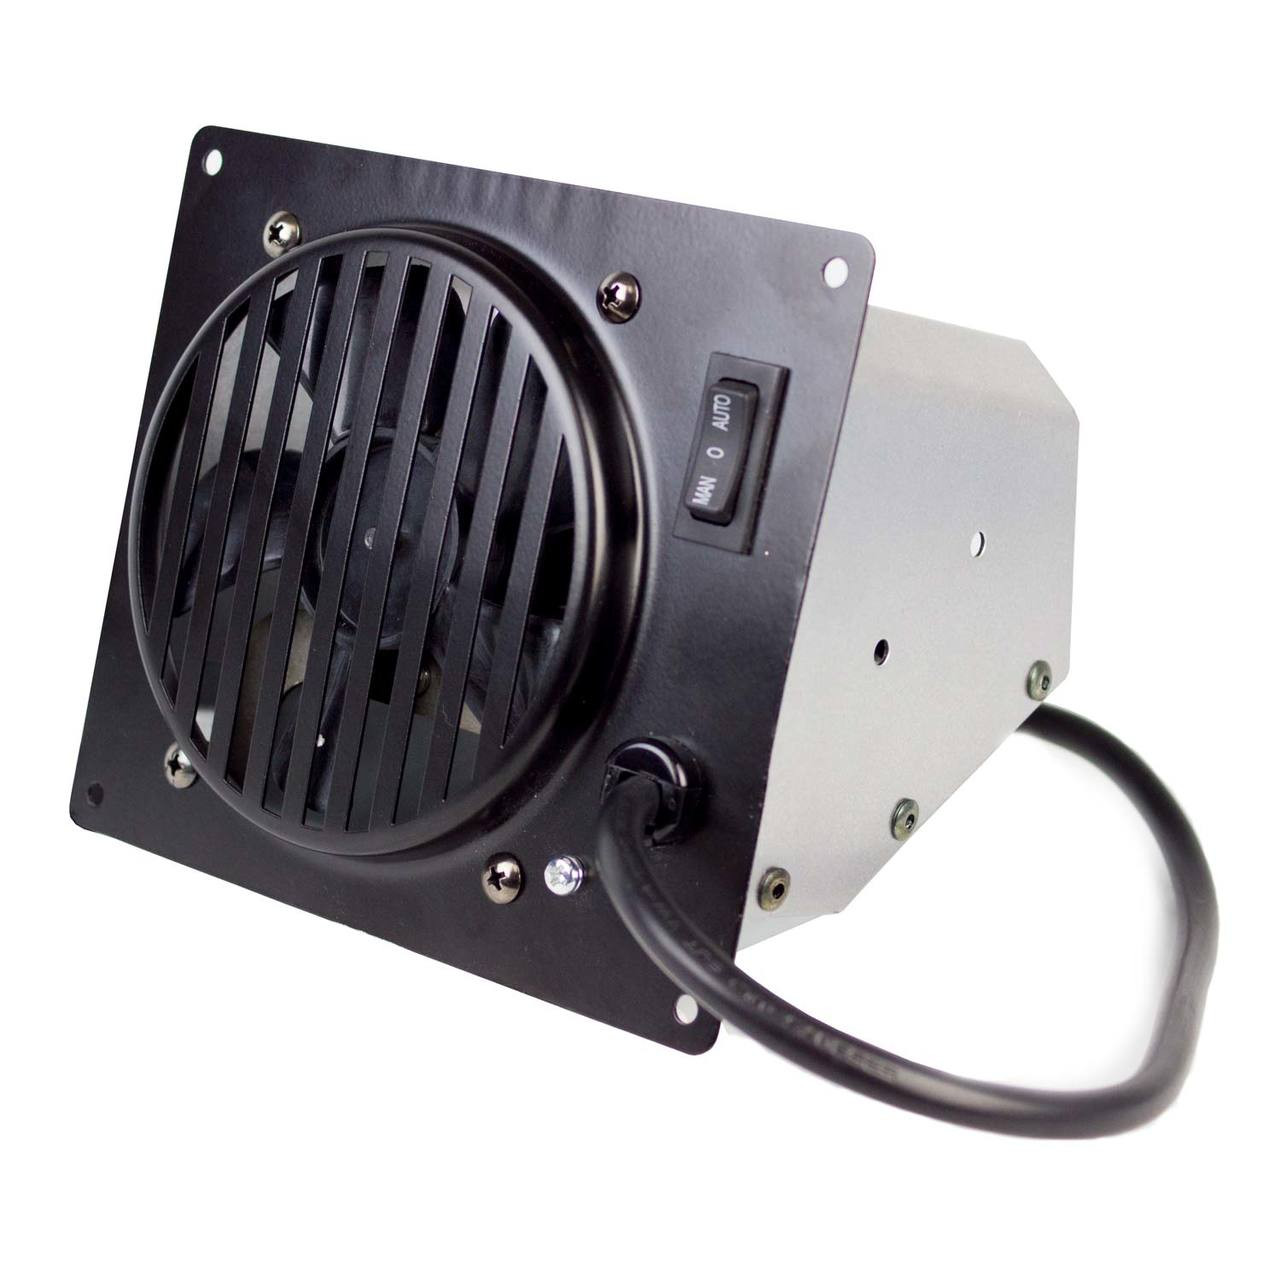 20 6127 Blower For Kozy World Gas And Comfort Glow Wall Heaters